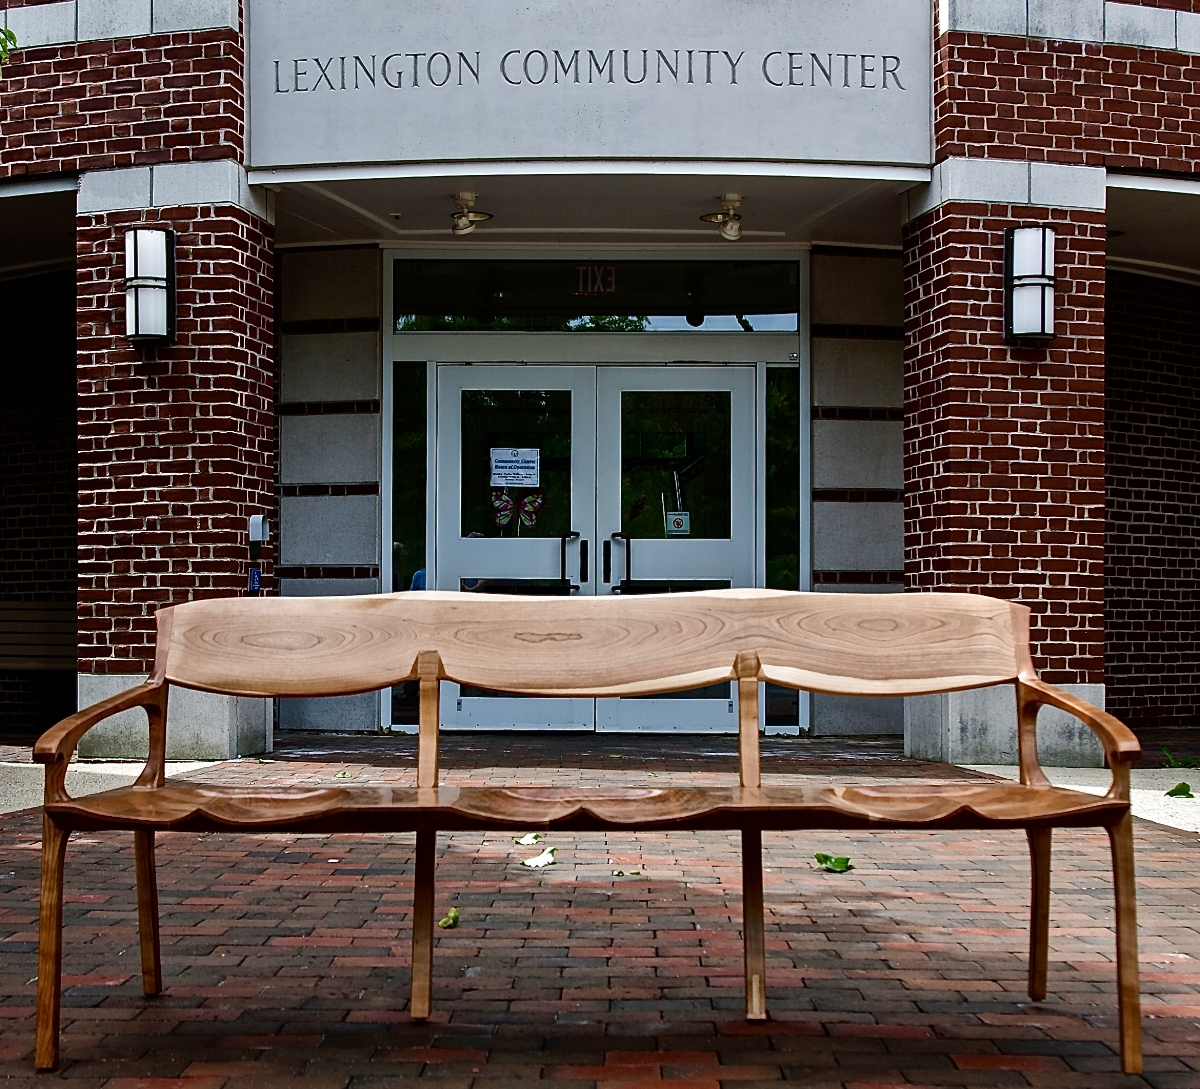 So I was approached to design a bench that the Lexington Woodworker's Guild would build and donate to the Lexington Community Center. The design is really an extended chair. The idea for the middle legs was stolen from the conoid chair that I built last year. A half dozen of us built it over the winter last year in the Woodworker's Guild shop, a real fun project.